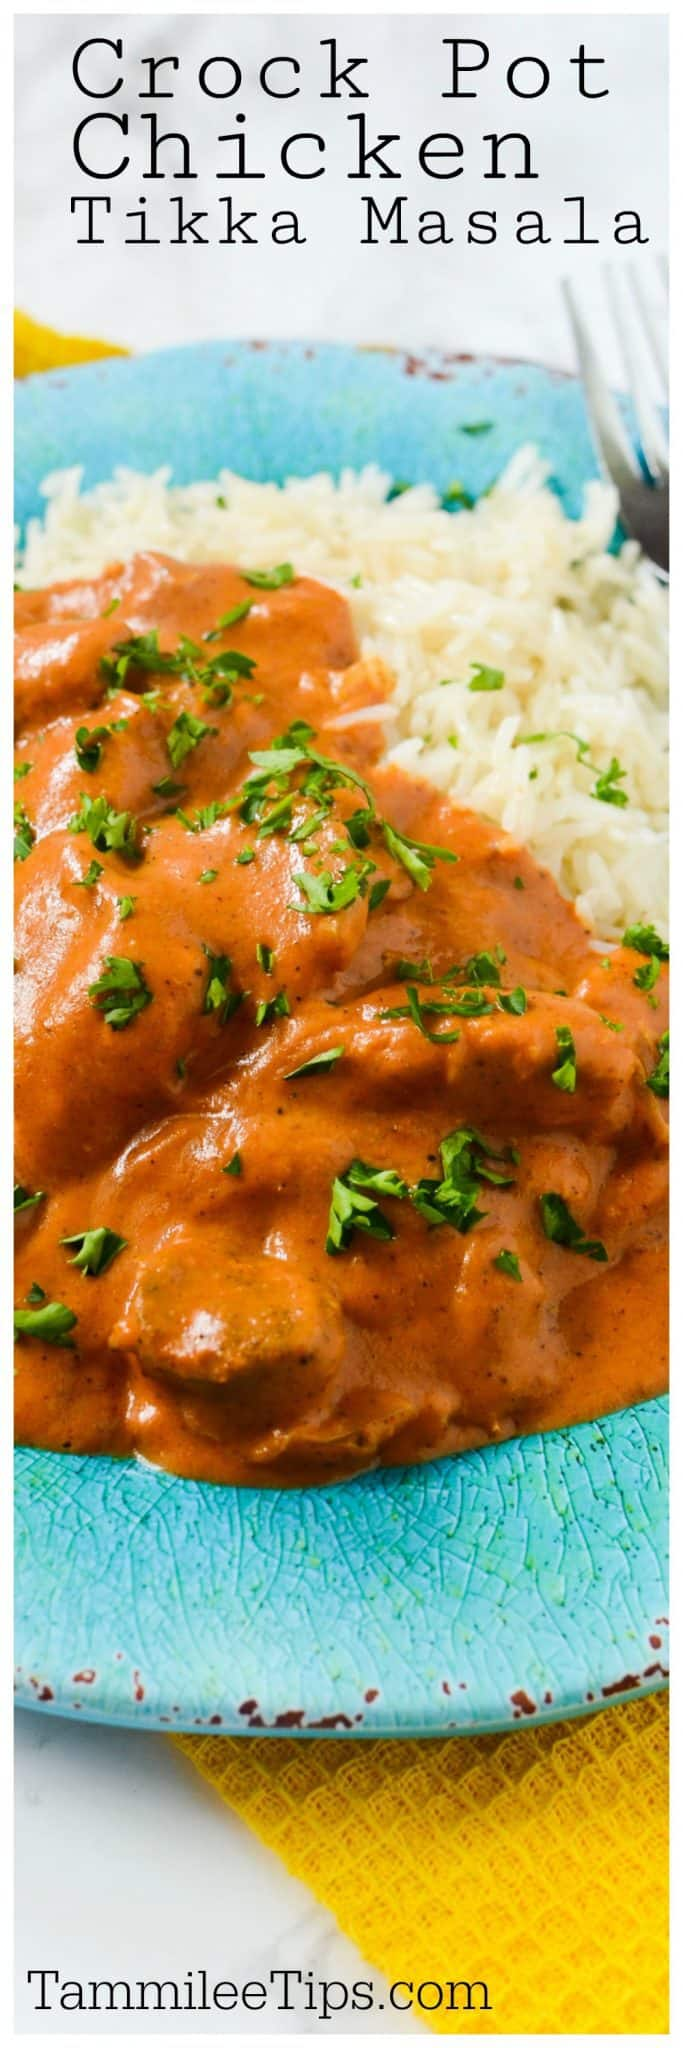 Crock Pot Slow Cooker Chicken Tikka Masala recipe is the perfect comfort food recipe! Easy to make and tastes so good. Perfect for family dinner. #slowcooker #crockpot #chicken